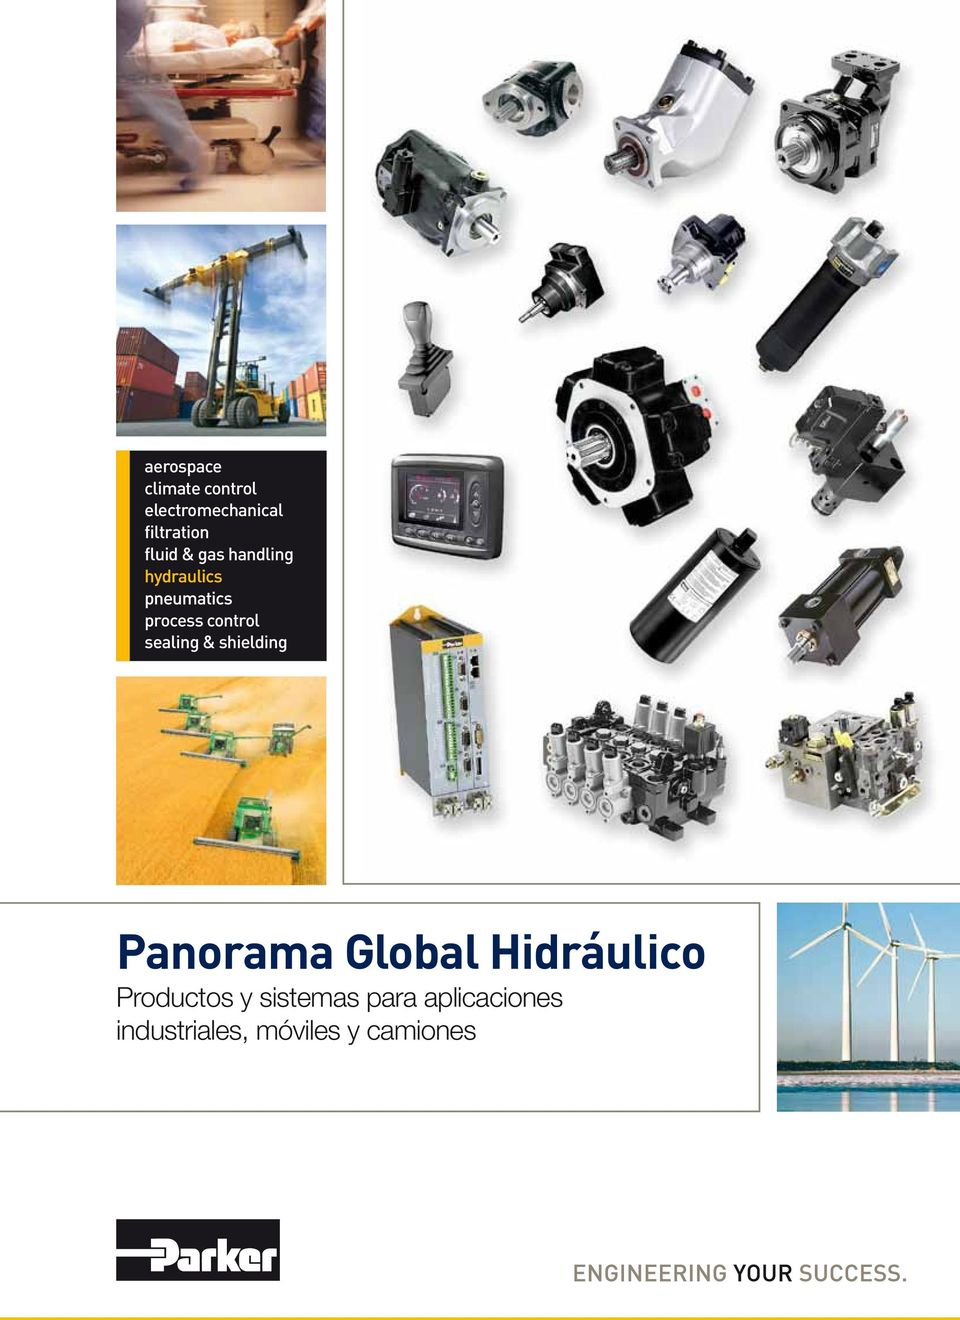 control sealing & shielding Panorama Global Hidráulico